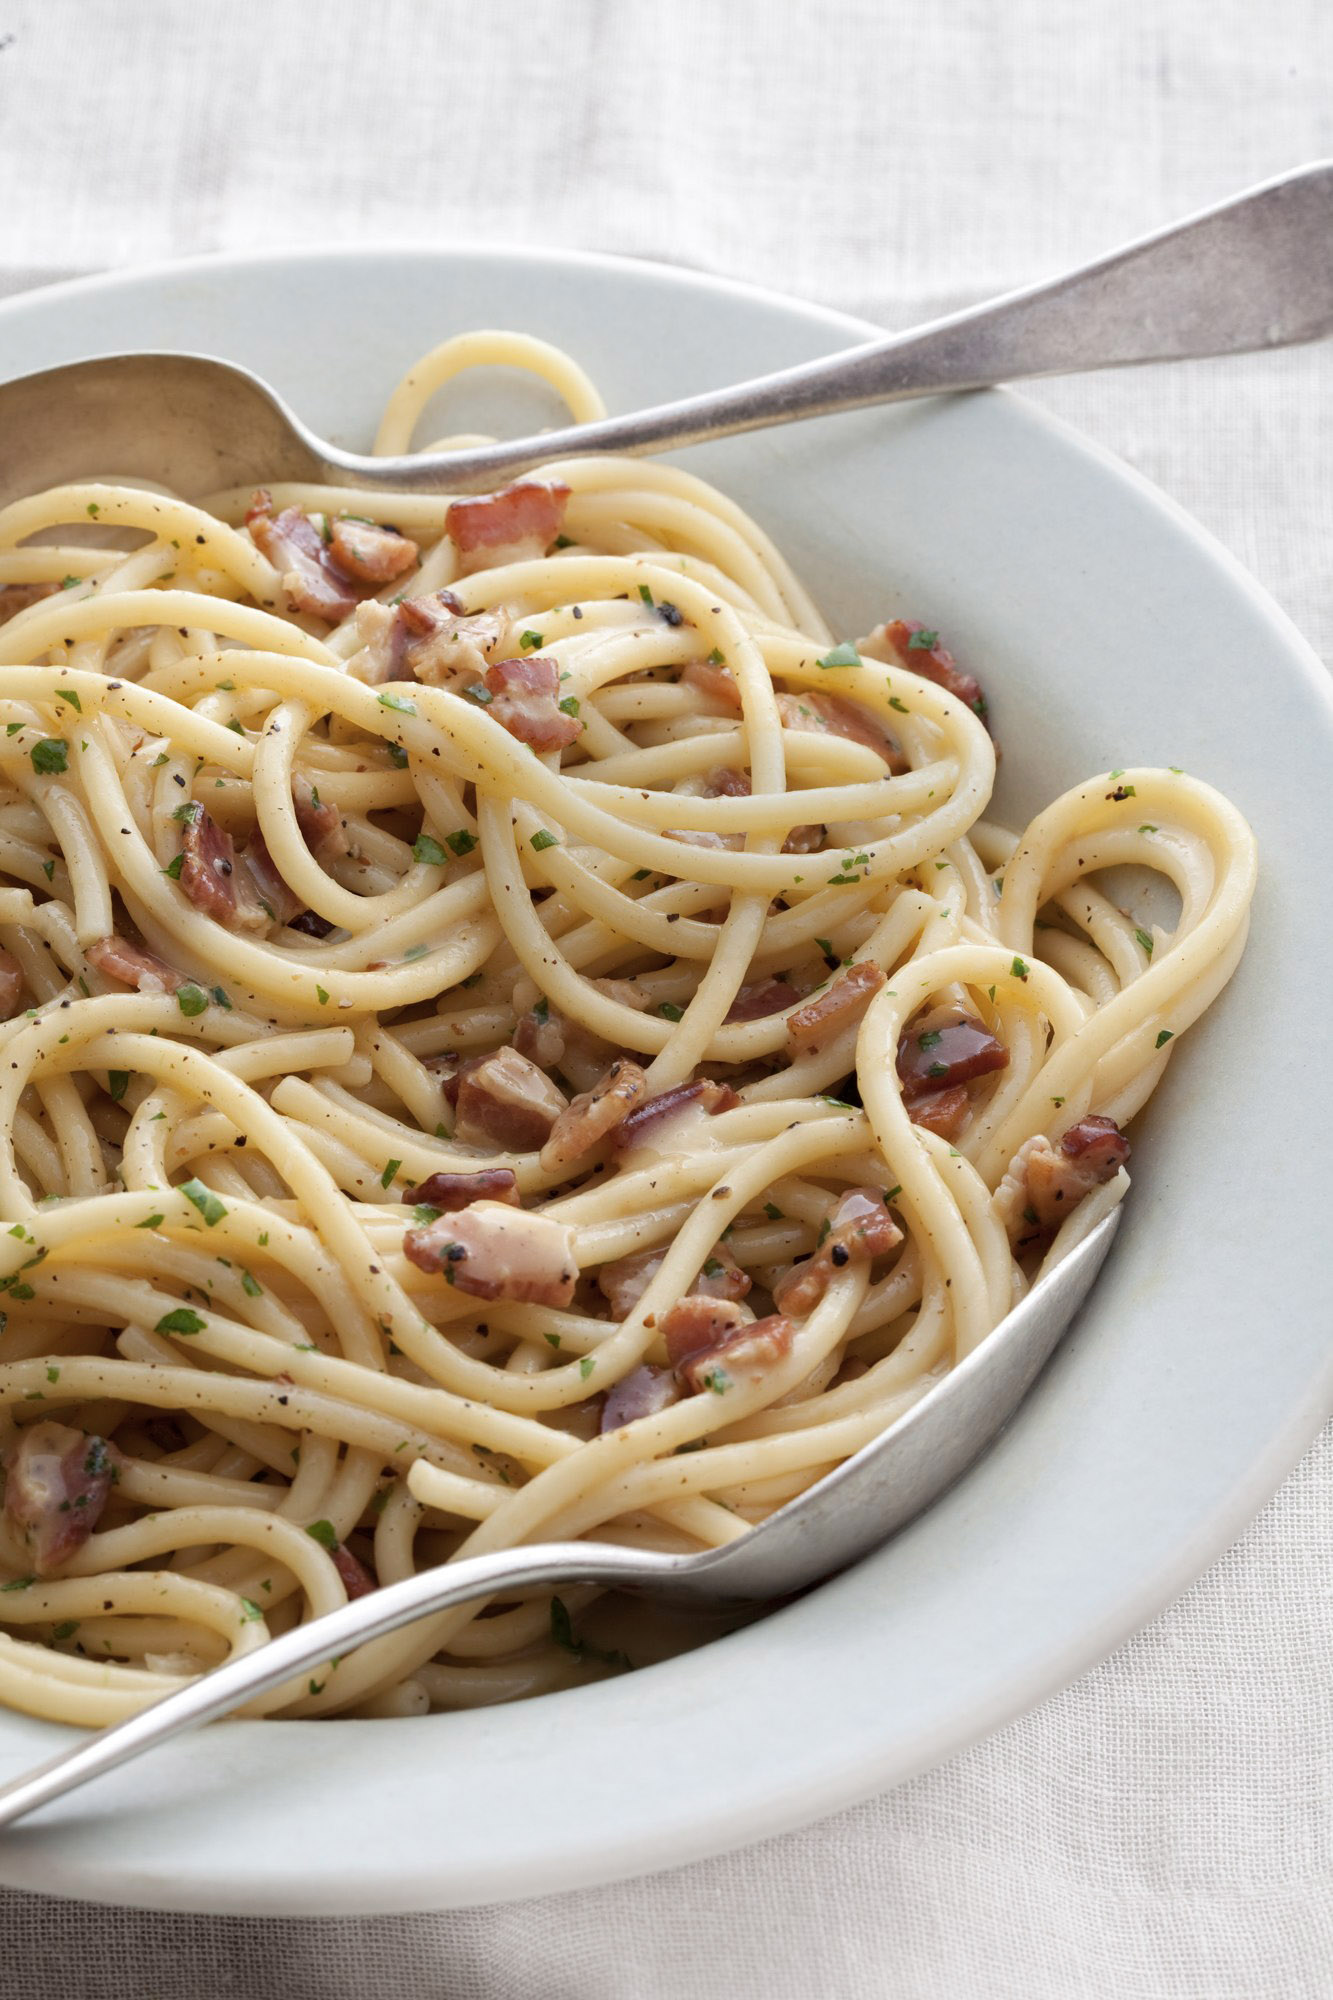 food stylist in San Francisco - Spaghetti Carbonara for the Pasta Cookbook by Julia Della Croce, photographed by Ray Katchatorian photographers